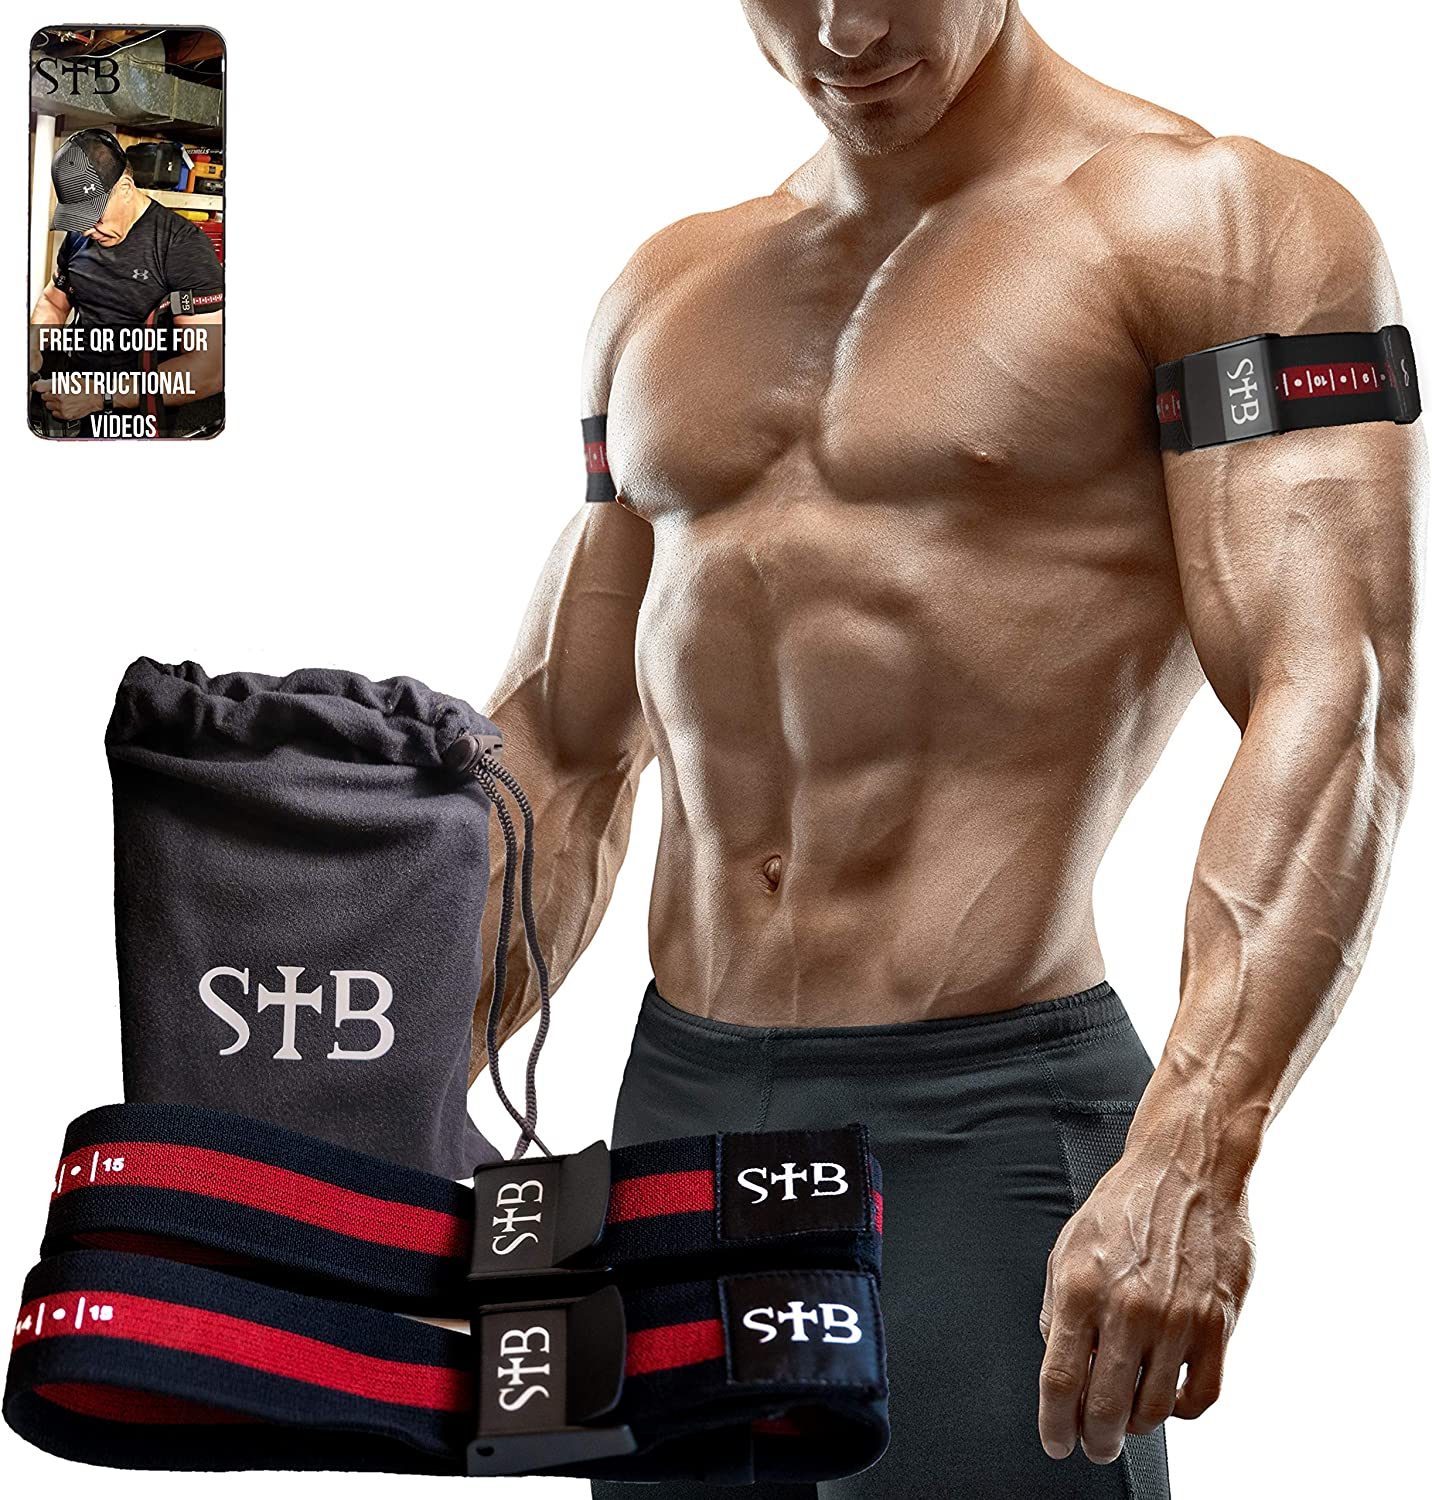 1 Pair Occlusion Training Bands Blood Flow Restriction Muscle Straps Arms